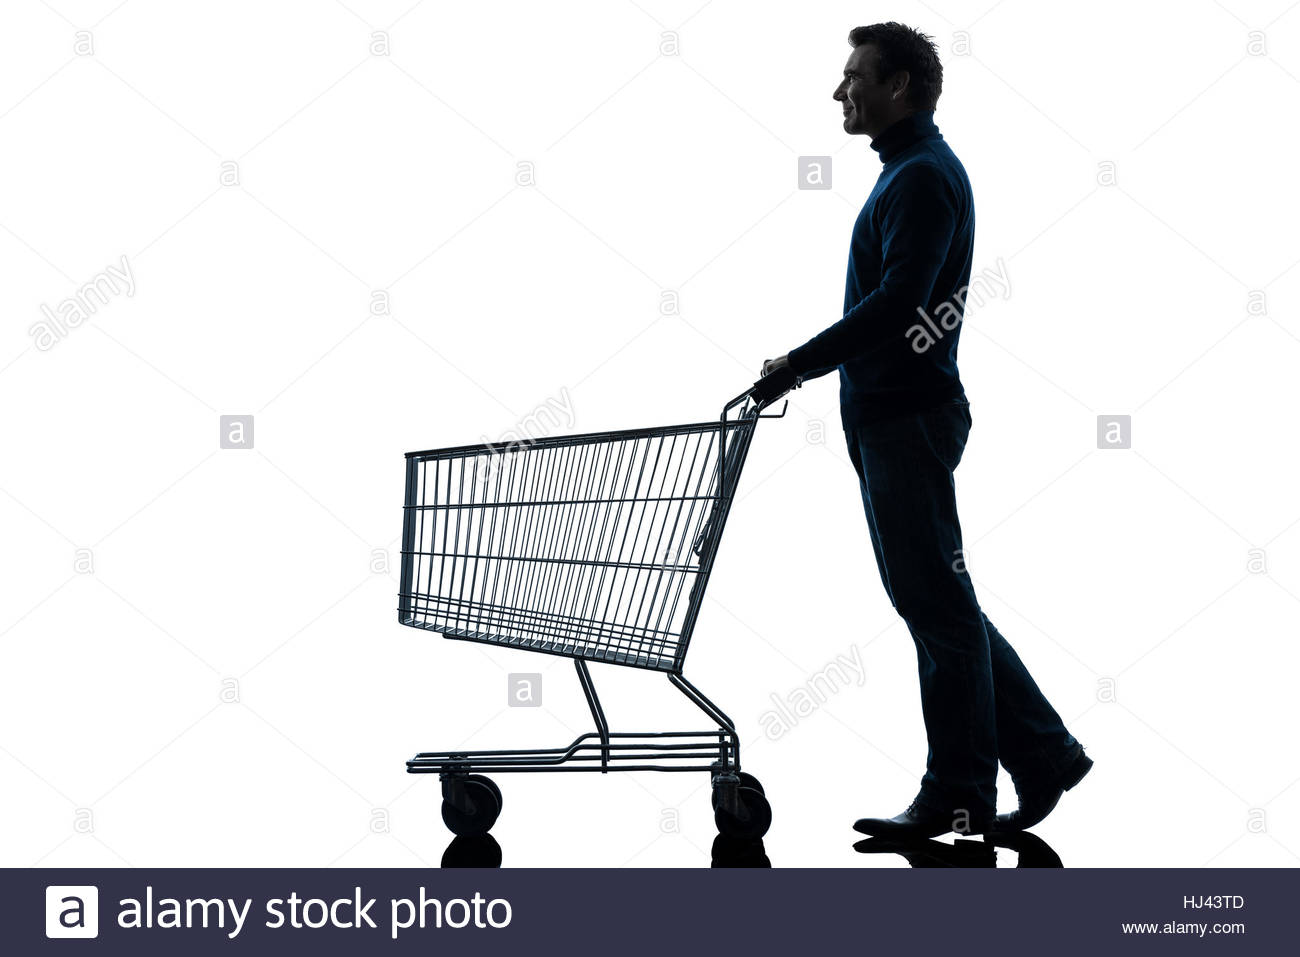 1300x957 One Caucasian Man With Empty Shopping Cart In Silhouette Studio